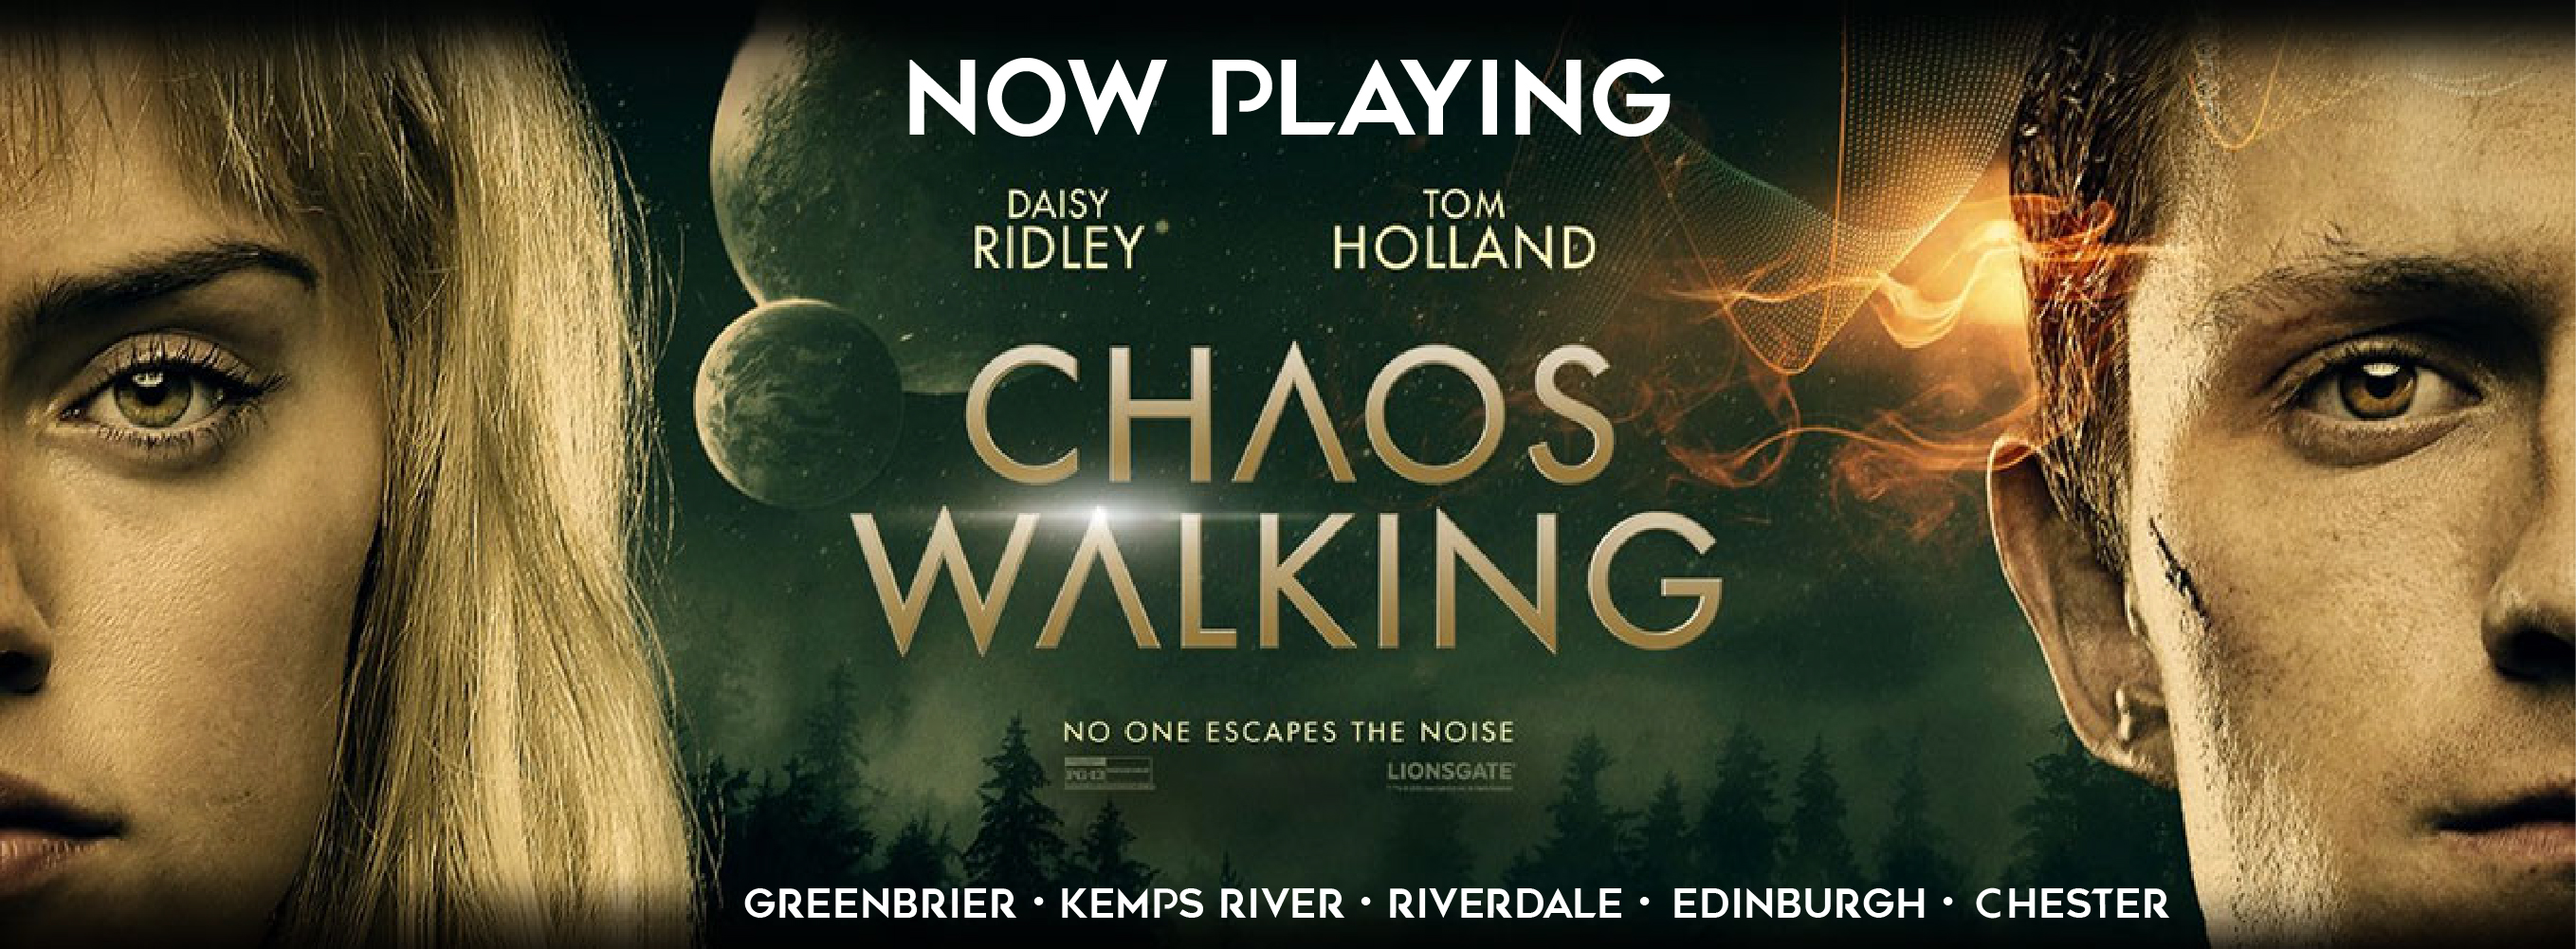 Get tickets to Chaos Walking now playing at the Greenbrier, Kemps River, Riverdale, Edinburgh, and Chester locations